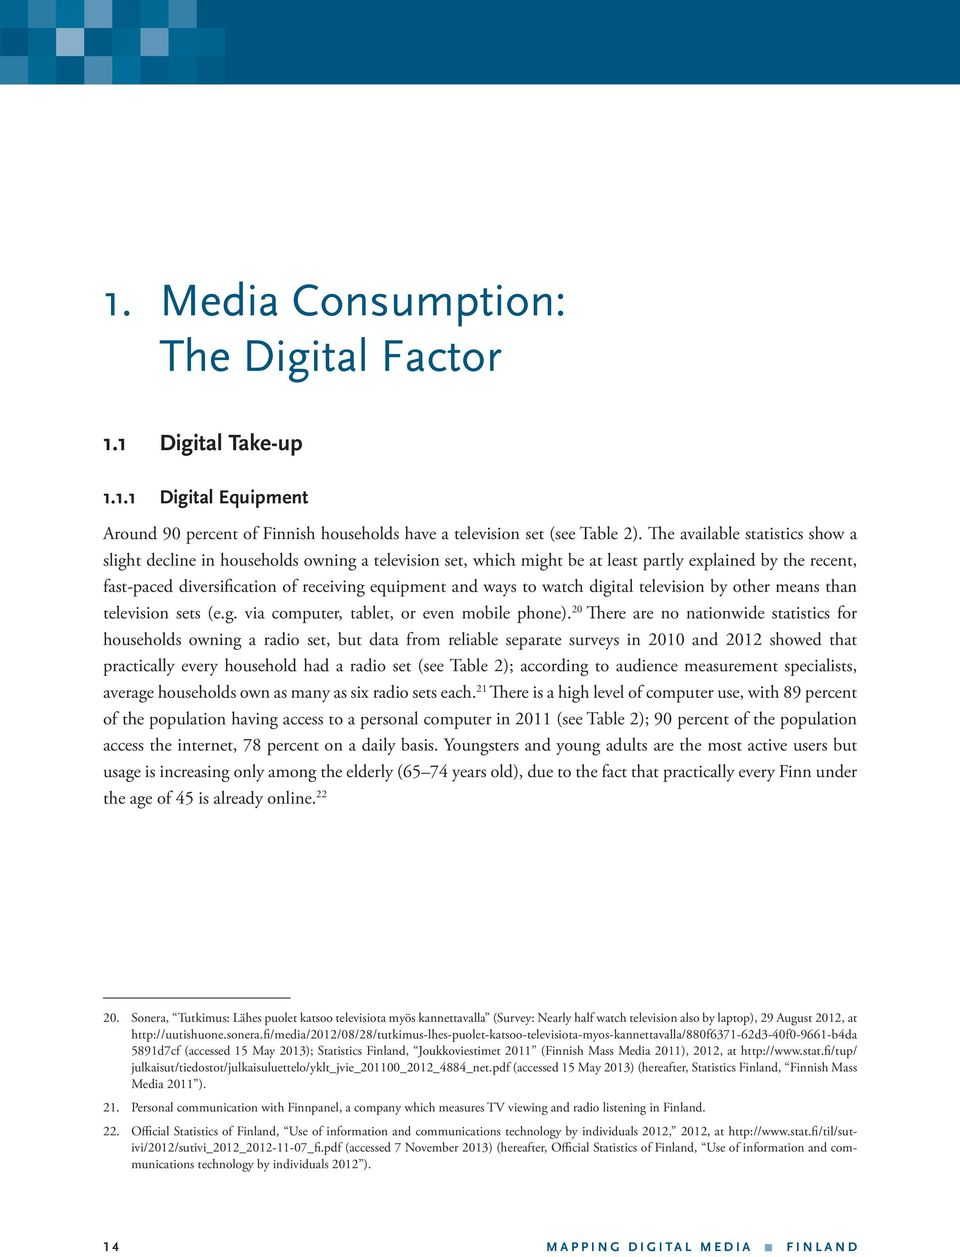 ways to watch digital television by other means than television sets (e.g. via computer, tablet, or even mobile phone).